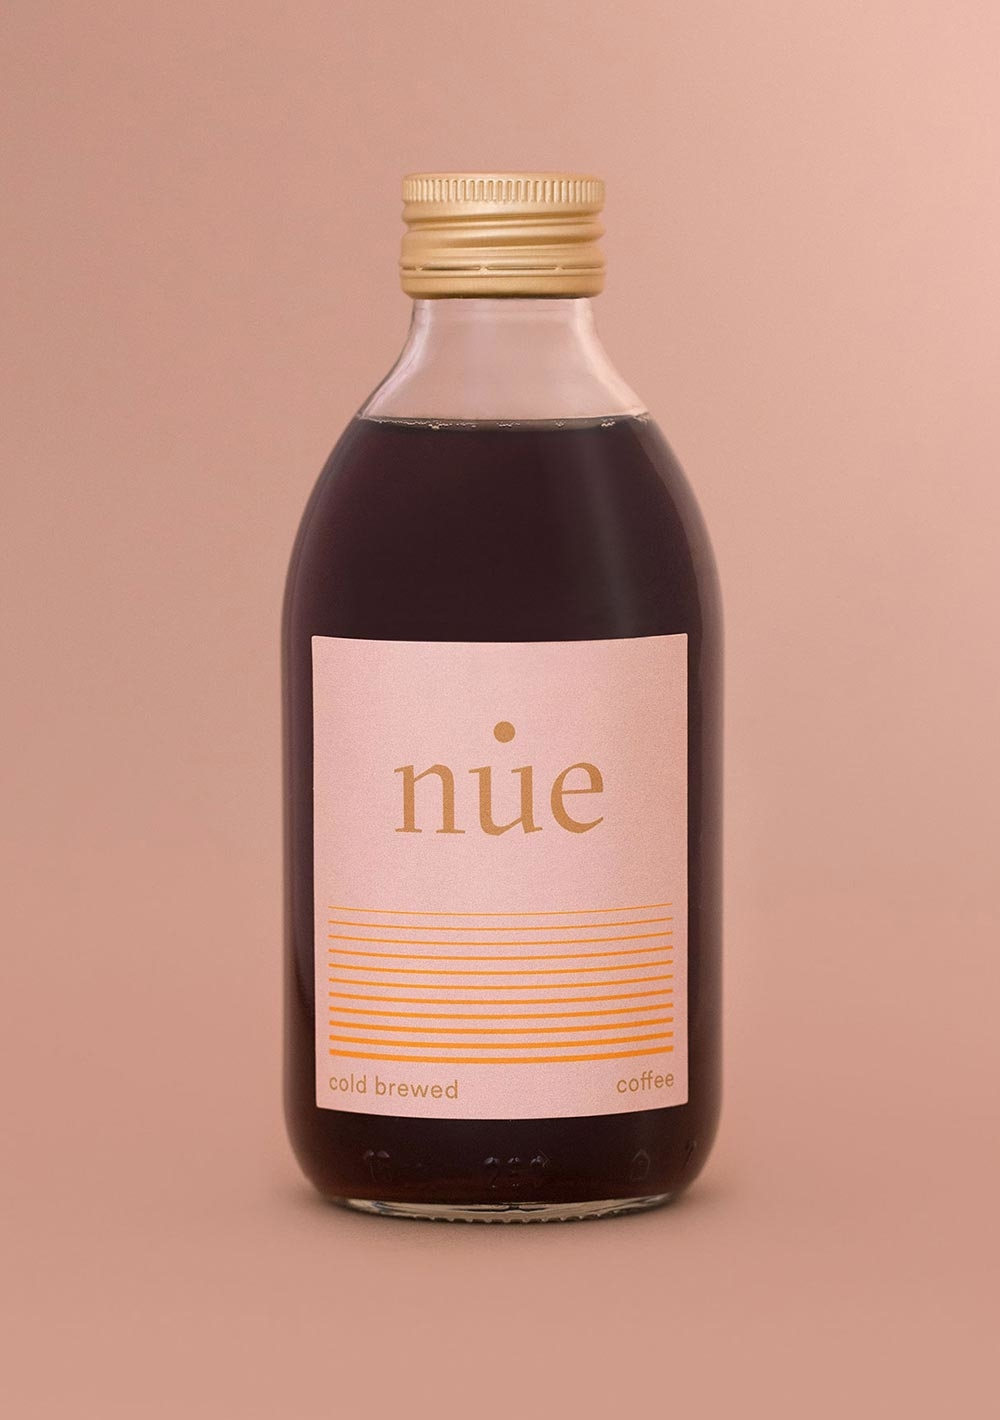 nue cold brewed coffee